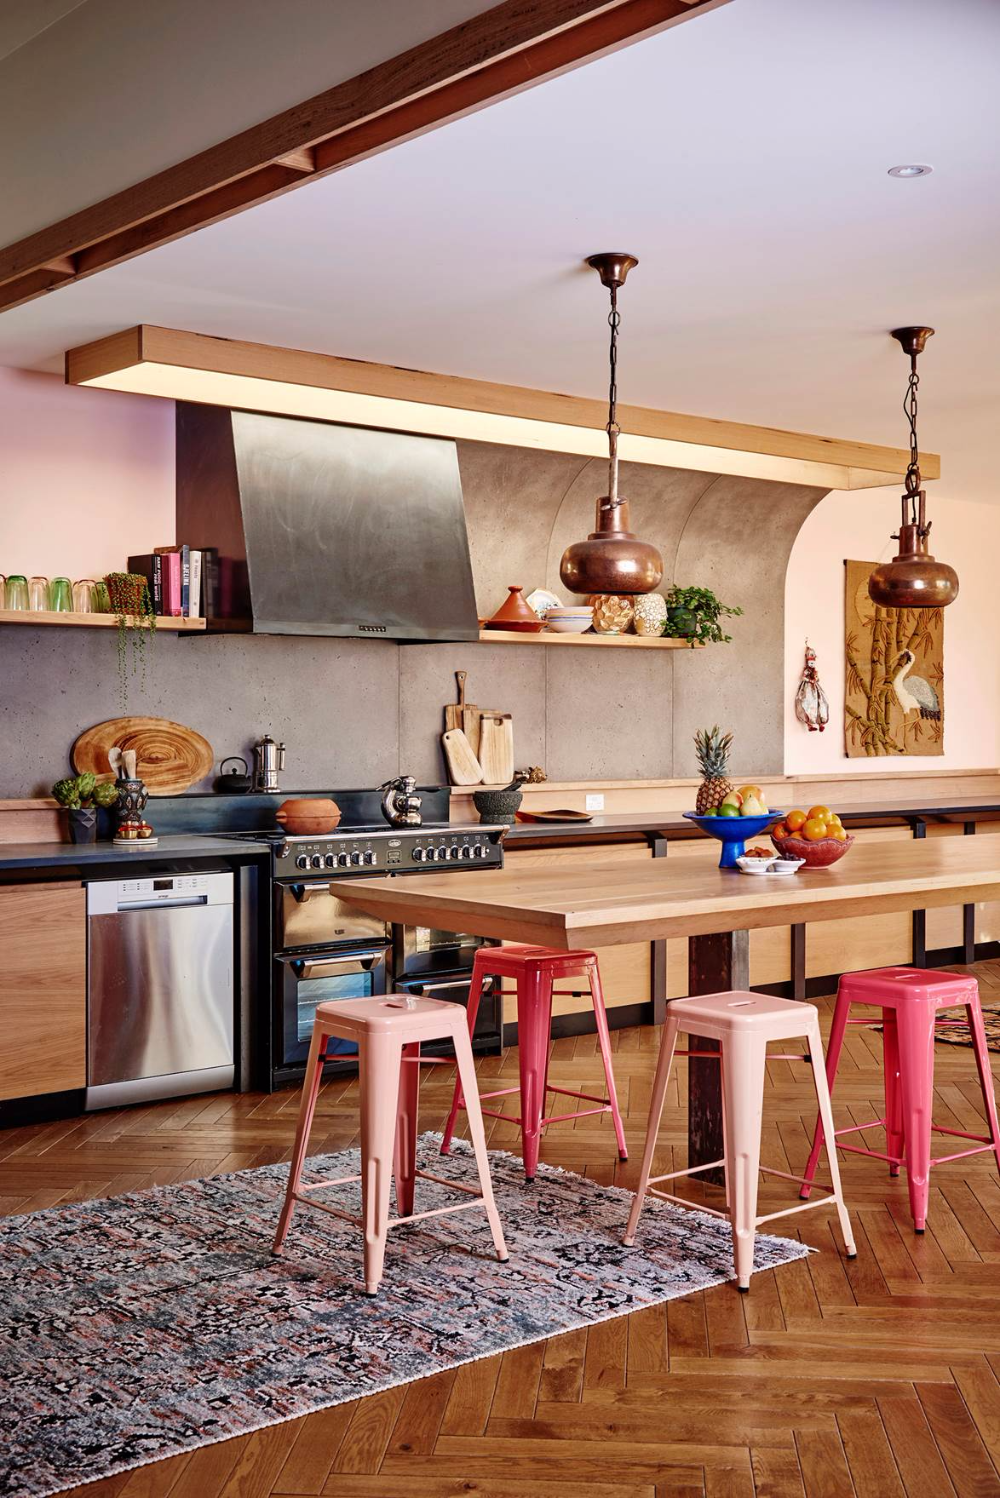 6 kitchen design tips to remember Kitchens without upper